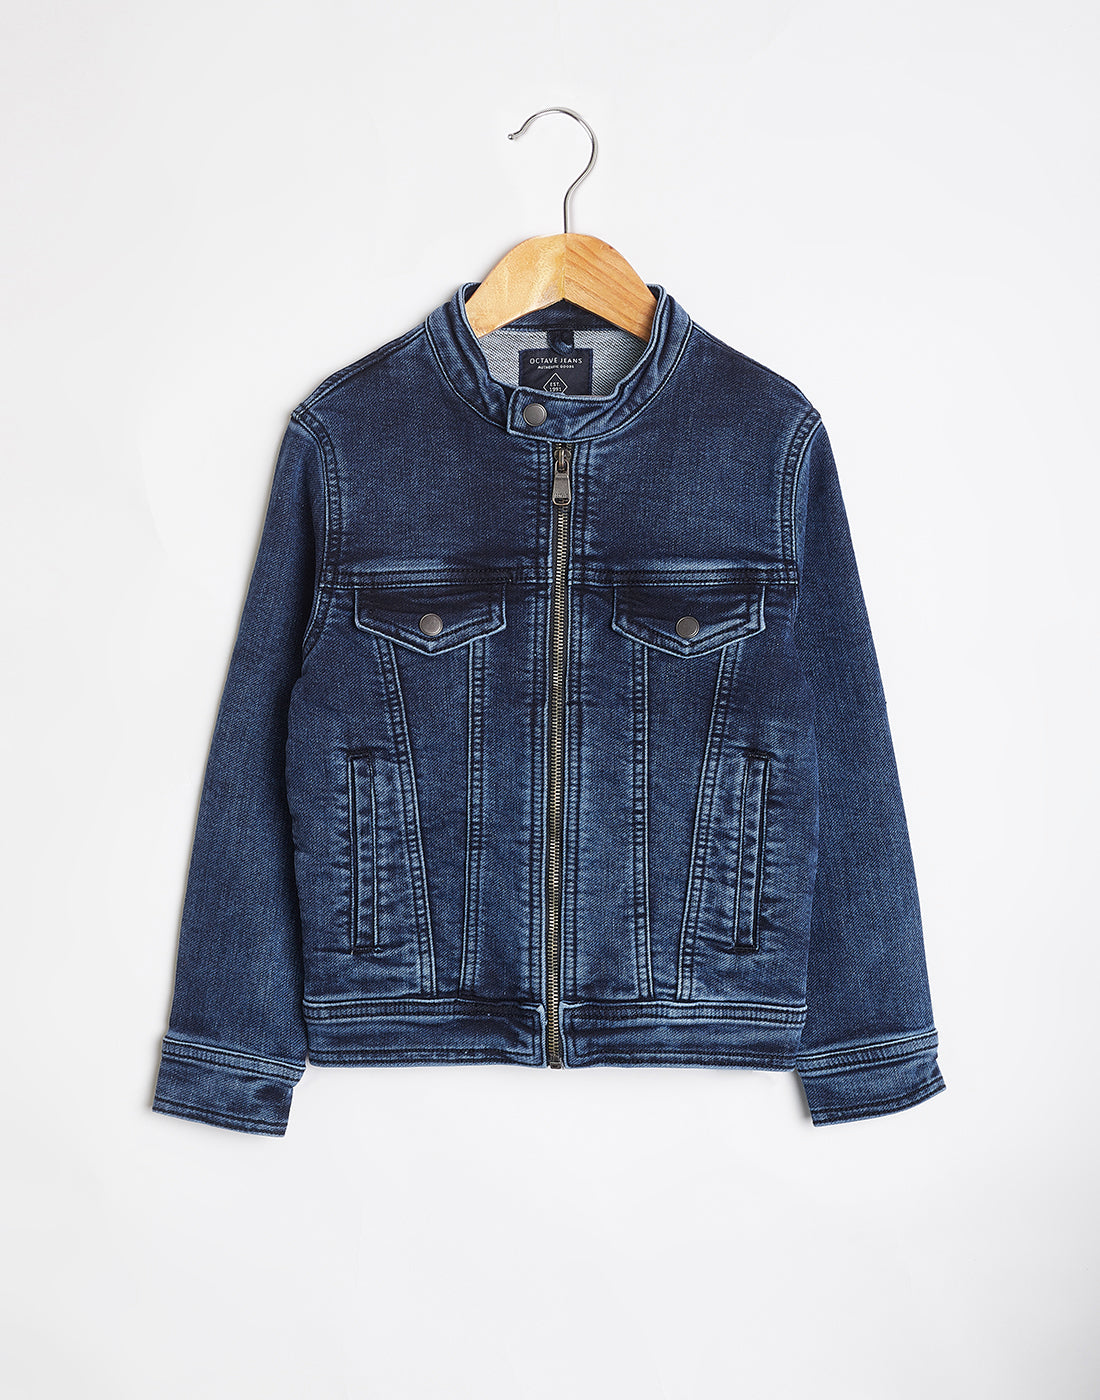 Octave Boys Denim Blue Jacket